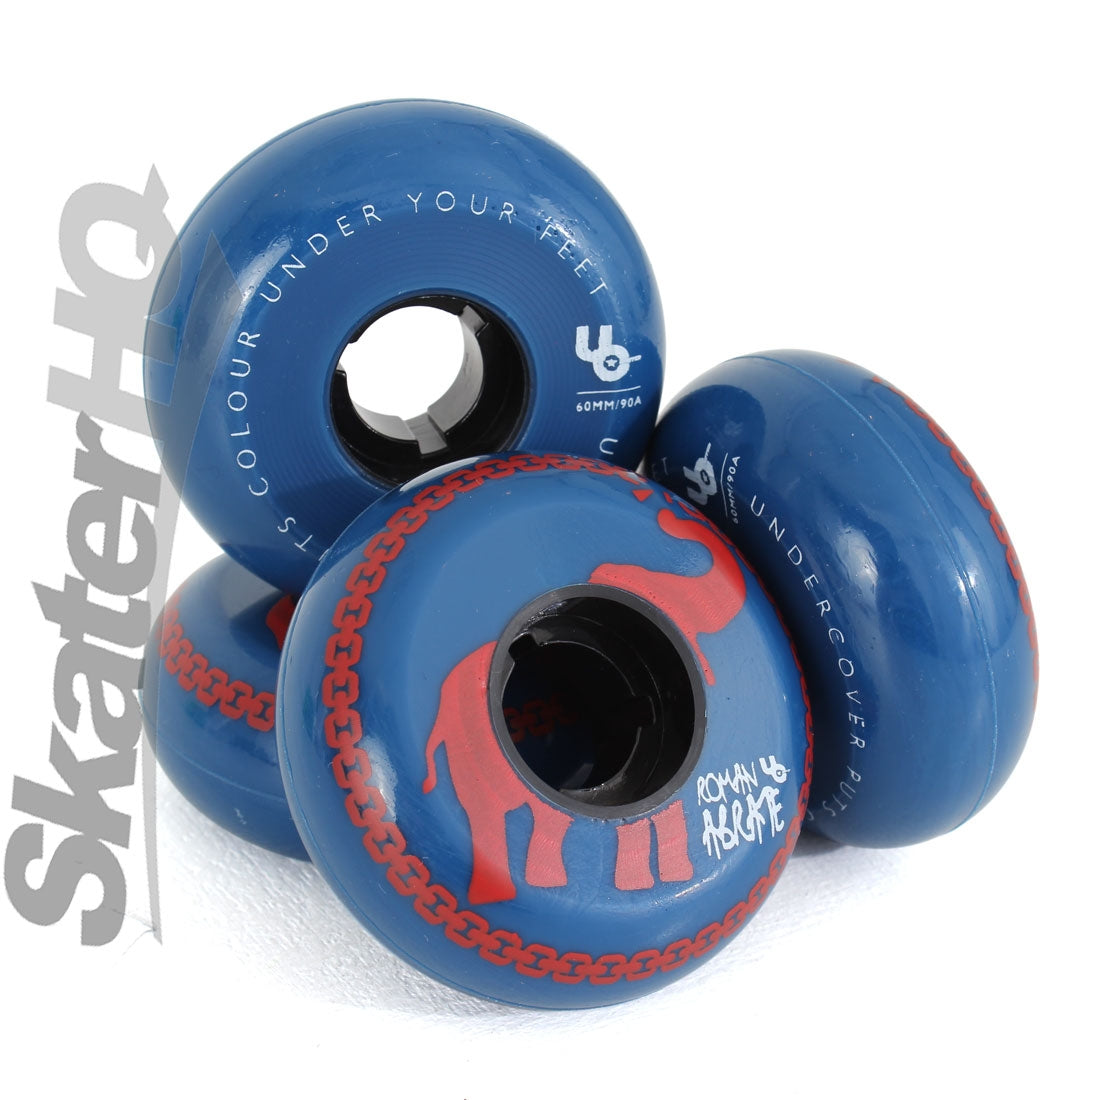 UC Abrate Circus 60mm/90a 4pk